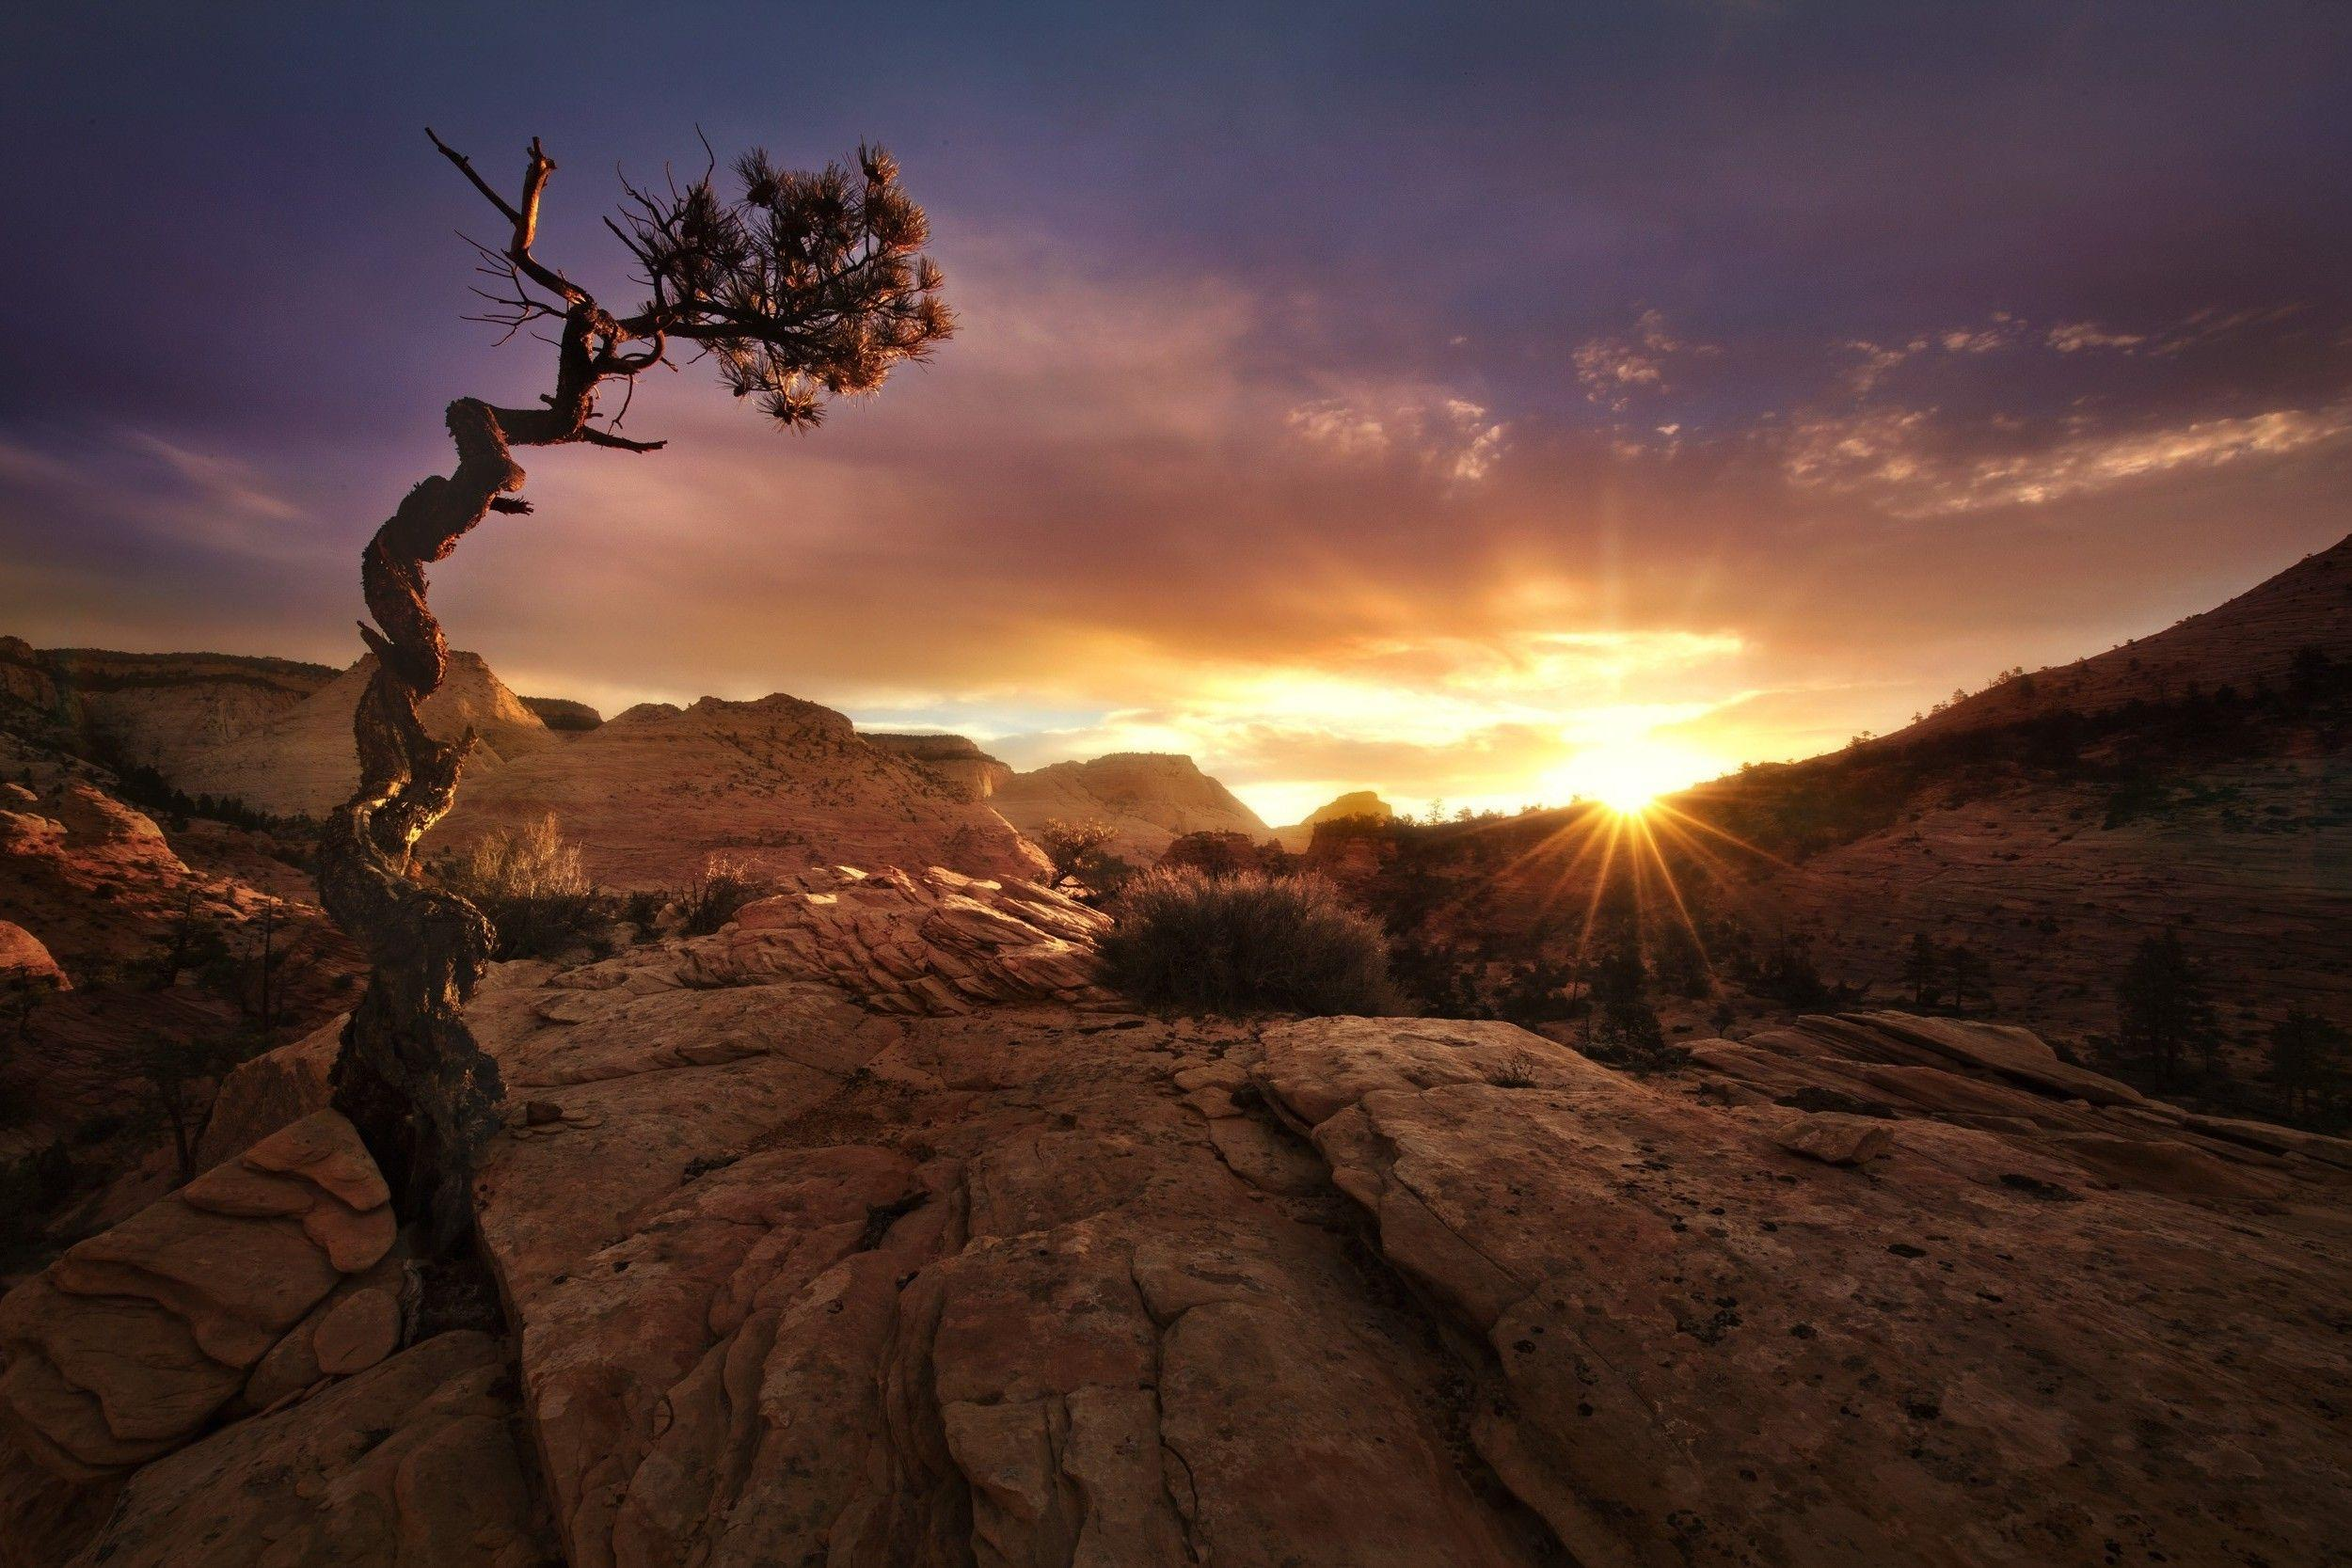 nature, Landscape, Fall, Sunset, Desert, Trees, Zion National Park ...